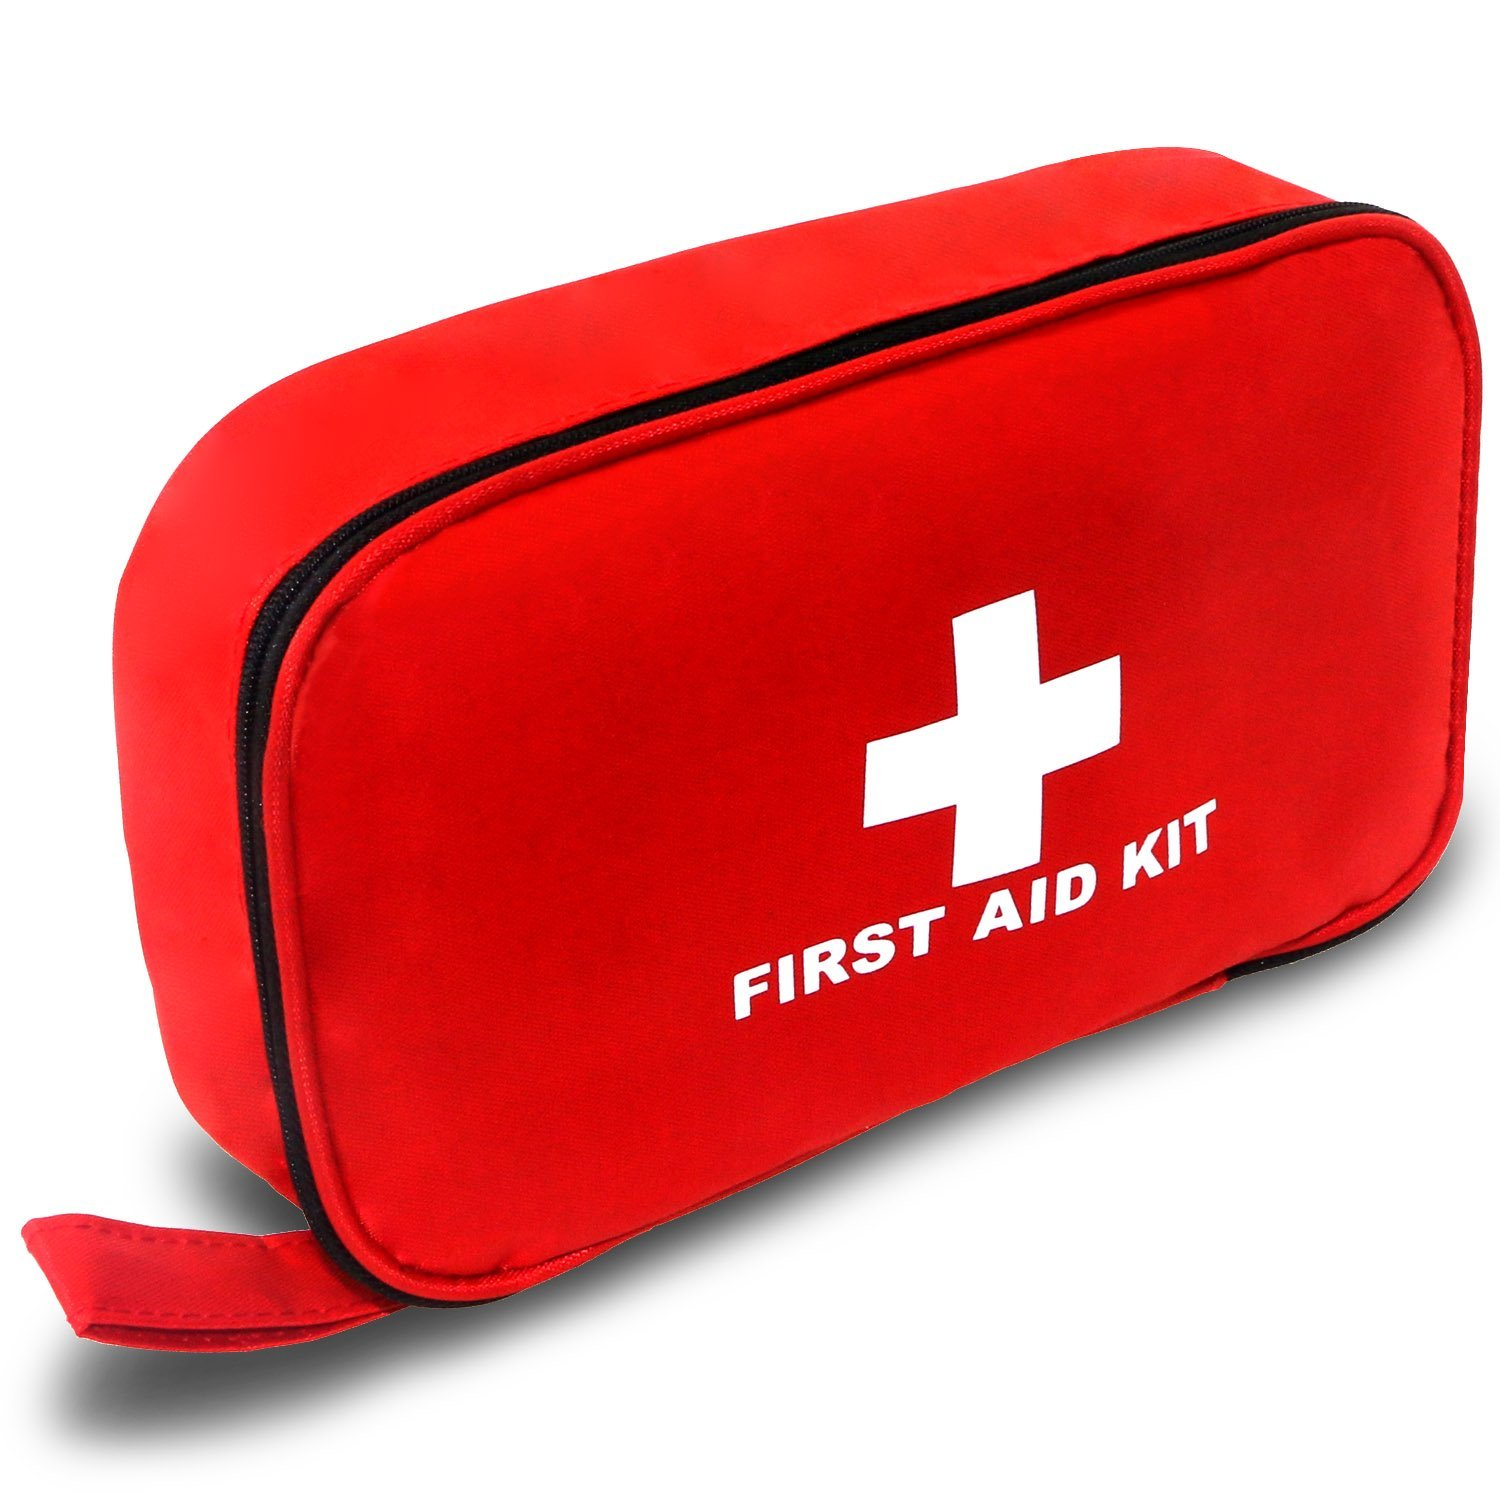 GikPal 180 Piece First Aid Kit FDA Approved Complete Emergency Bag High Quality Medical Supplies for Medical Emergency, Home, Car, Camping, Hiking, Sport, Work, Office, Boat, Survival, and Traveling